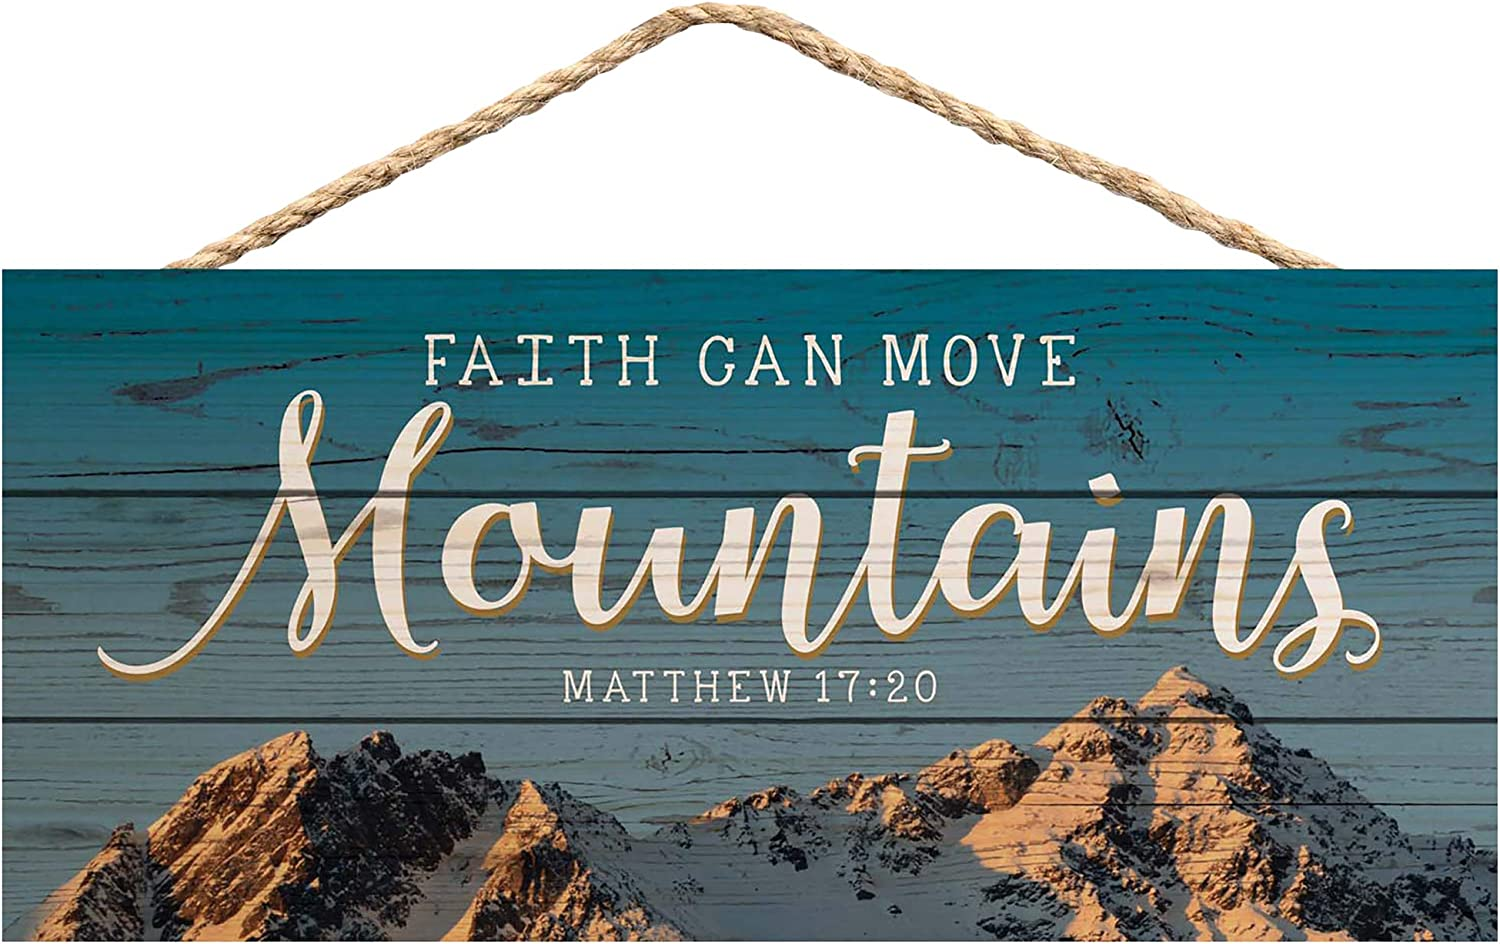 P. Graham Dunn Faith Can Move Mountains 5 x 10 Wood Plank Design Hanging Sign